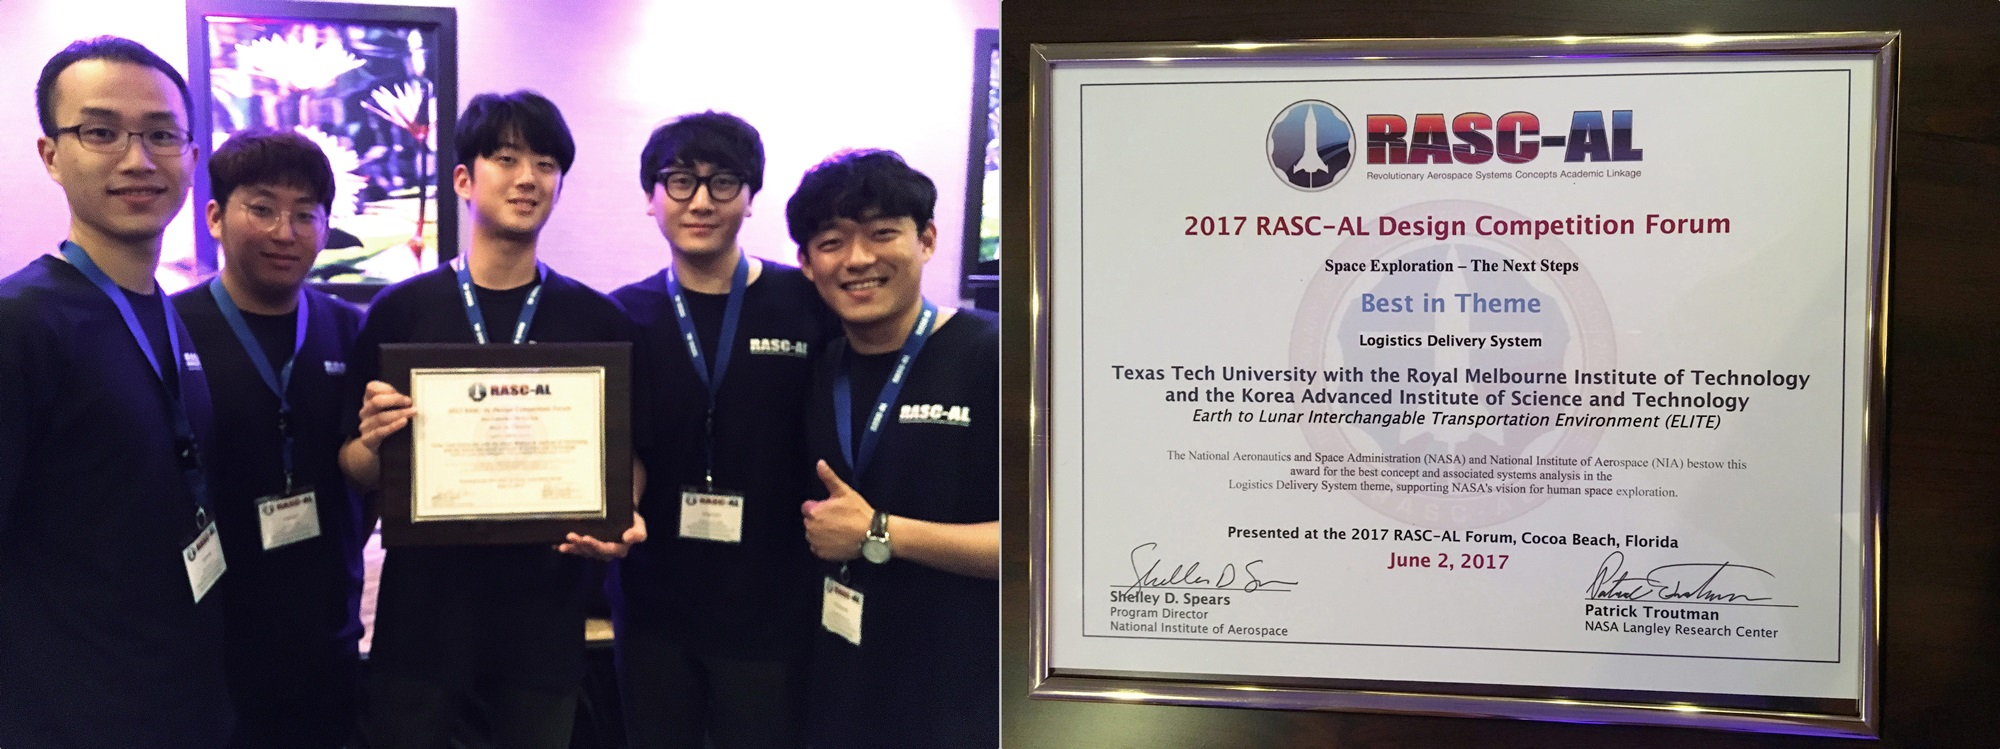 Department of Aerospace Engineering wins award in NASA mission design competition 이미지2